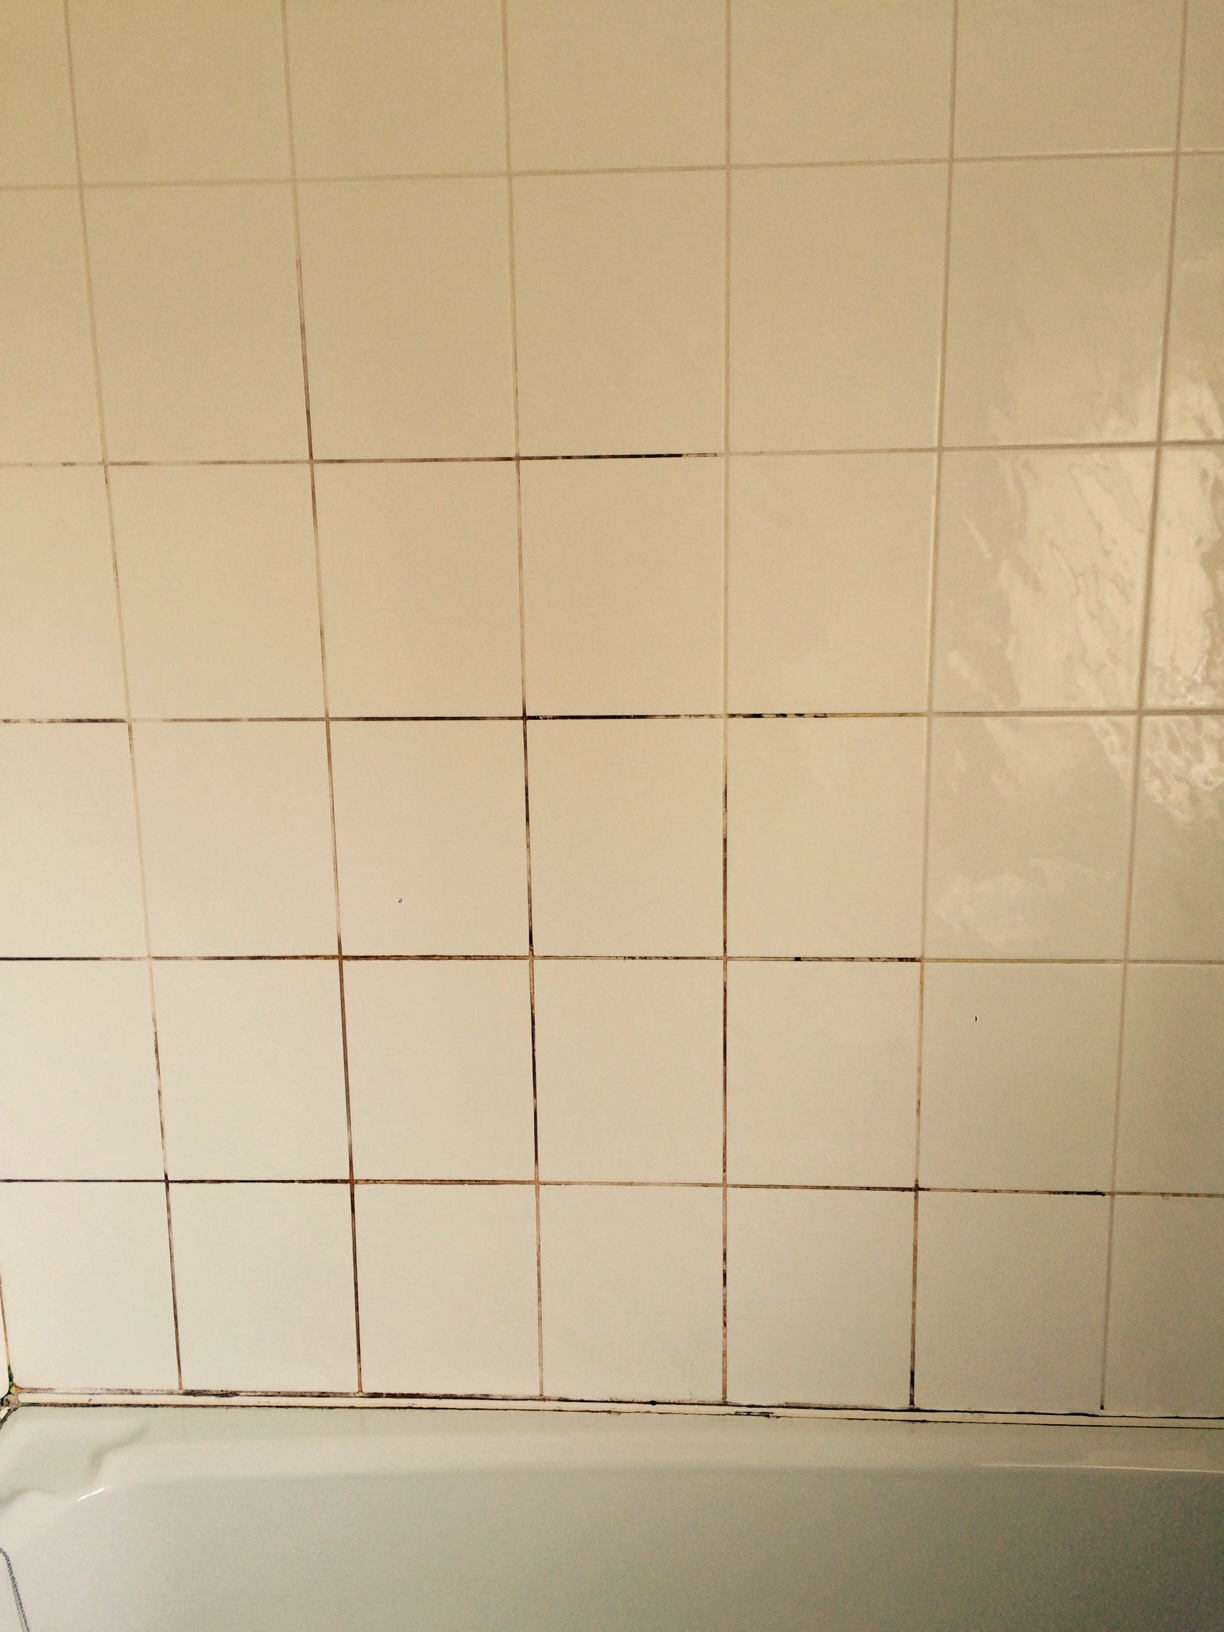 Ceramic Bathroom Tile and Grout Part Cleaned with Mould Away in Galgate